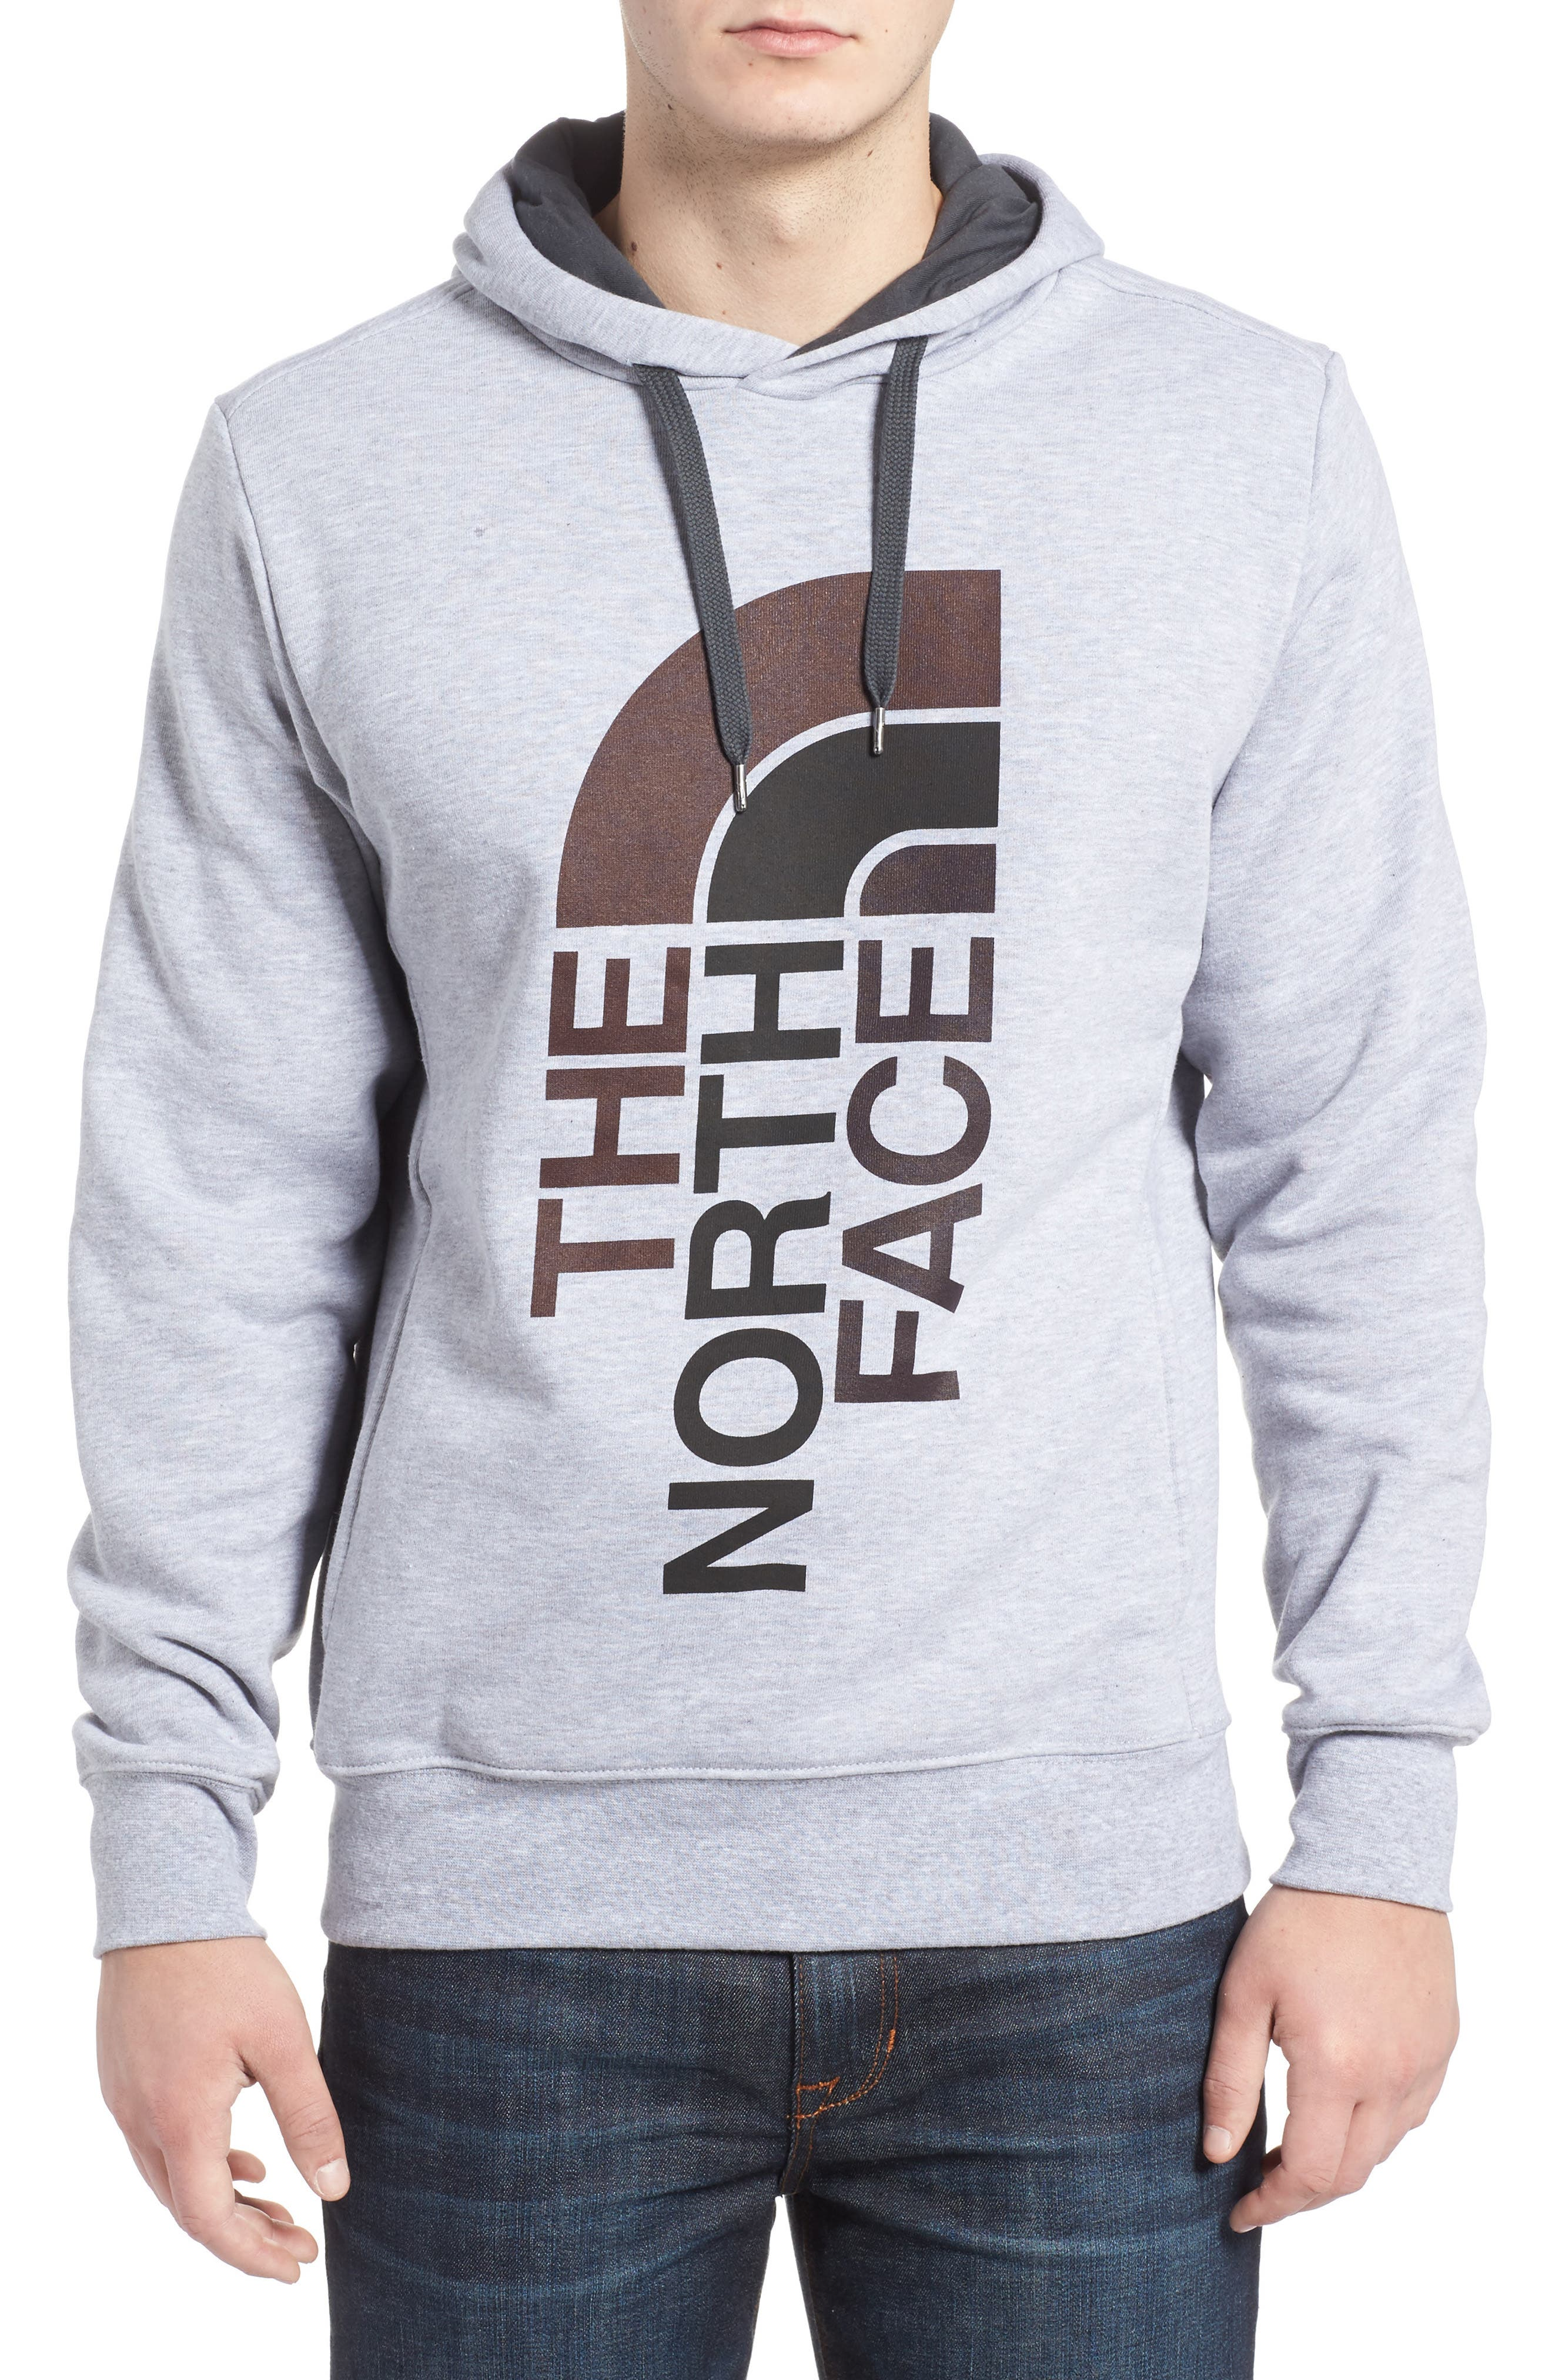 Trivert Cotton Blend Hoodie,                             Main thumbnail 1, color,                             Light Grey/ Asphalt Grey Multi